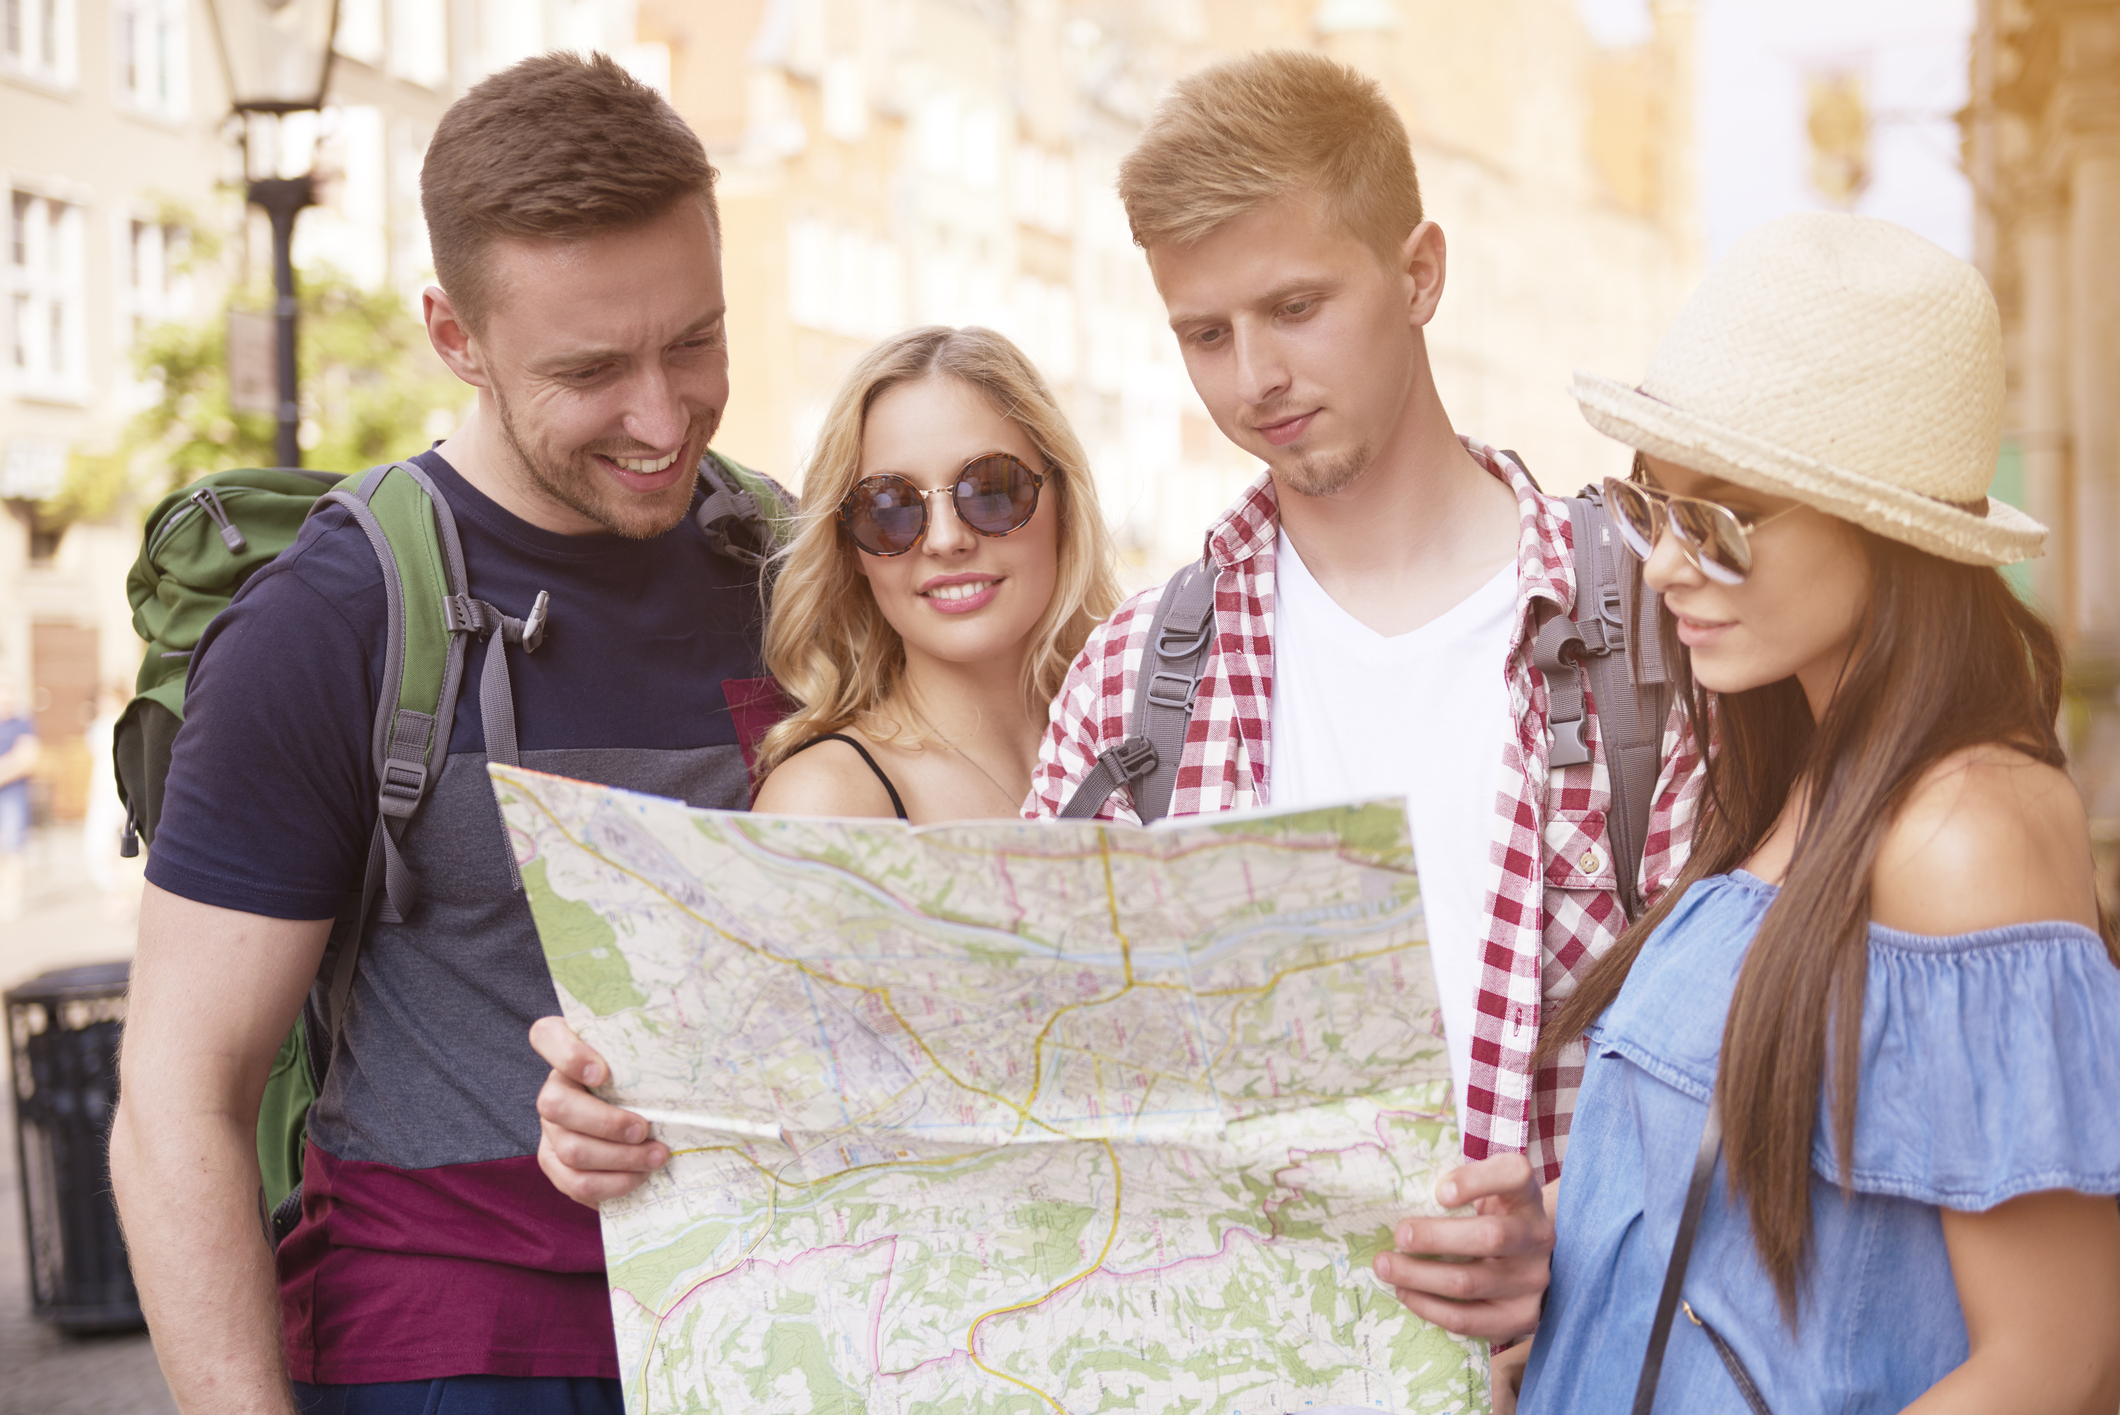 Keep Your Wanderlust in Good Financial Standing